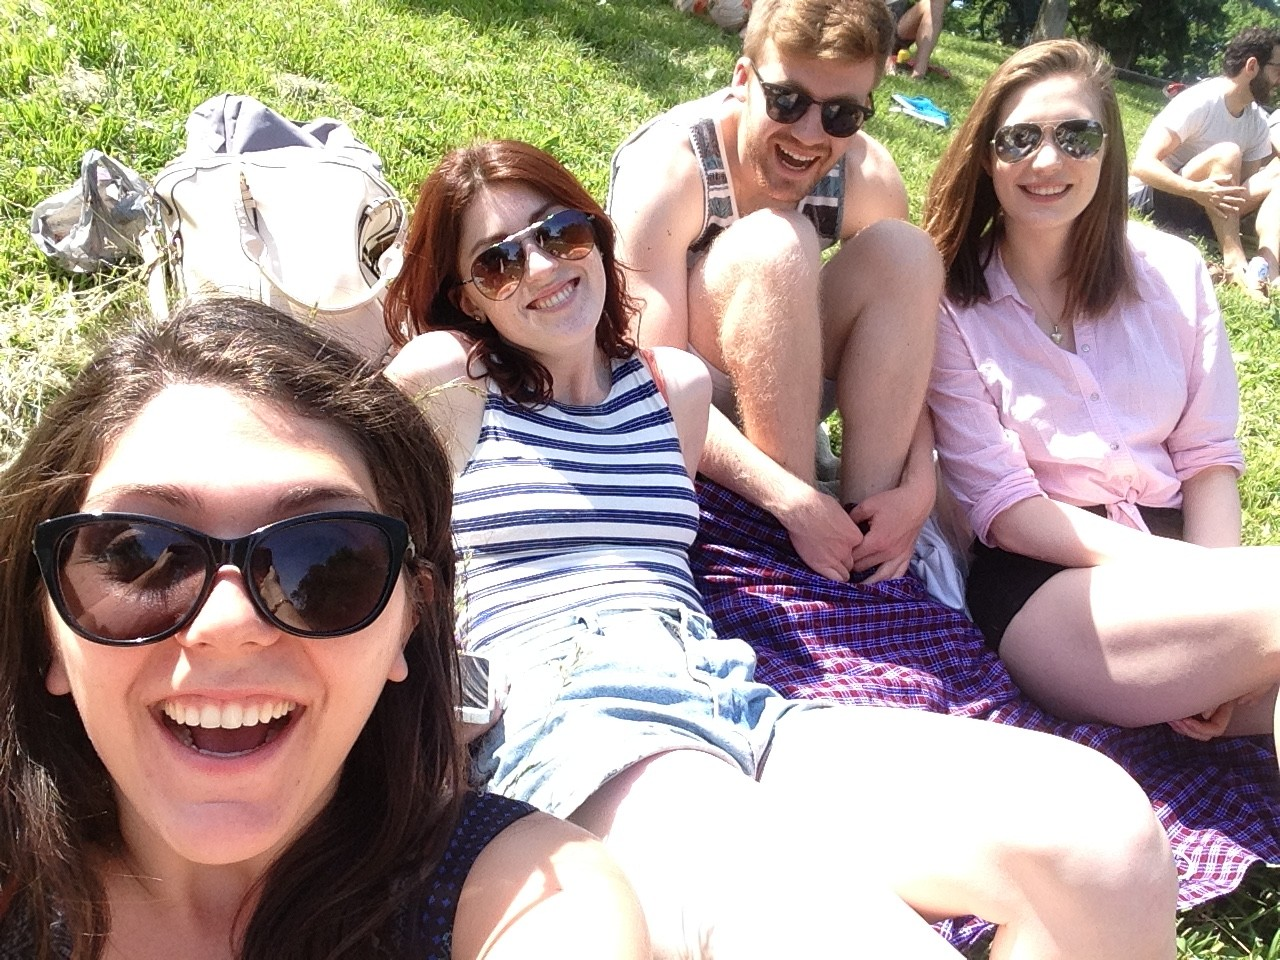 A selfie of me and three friends hanging out in Trinity Bellwoods park.